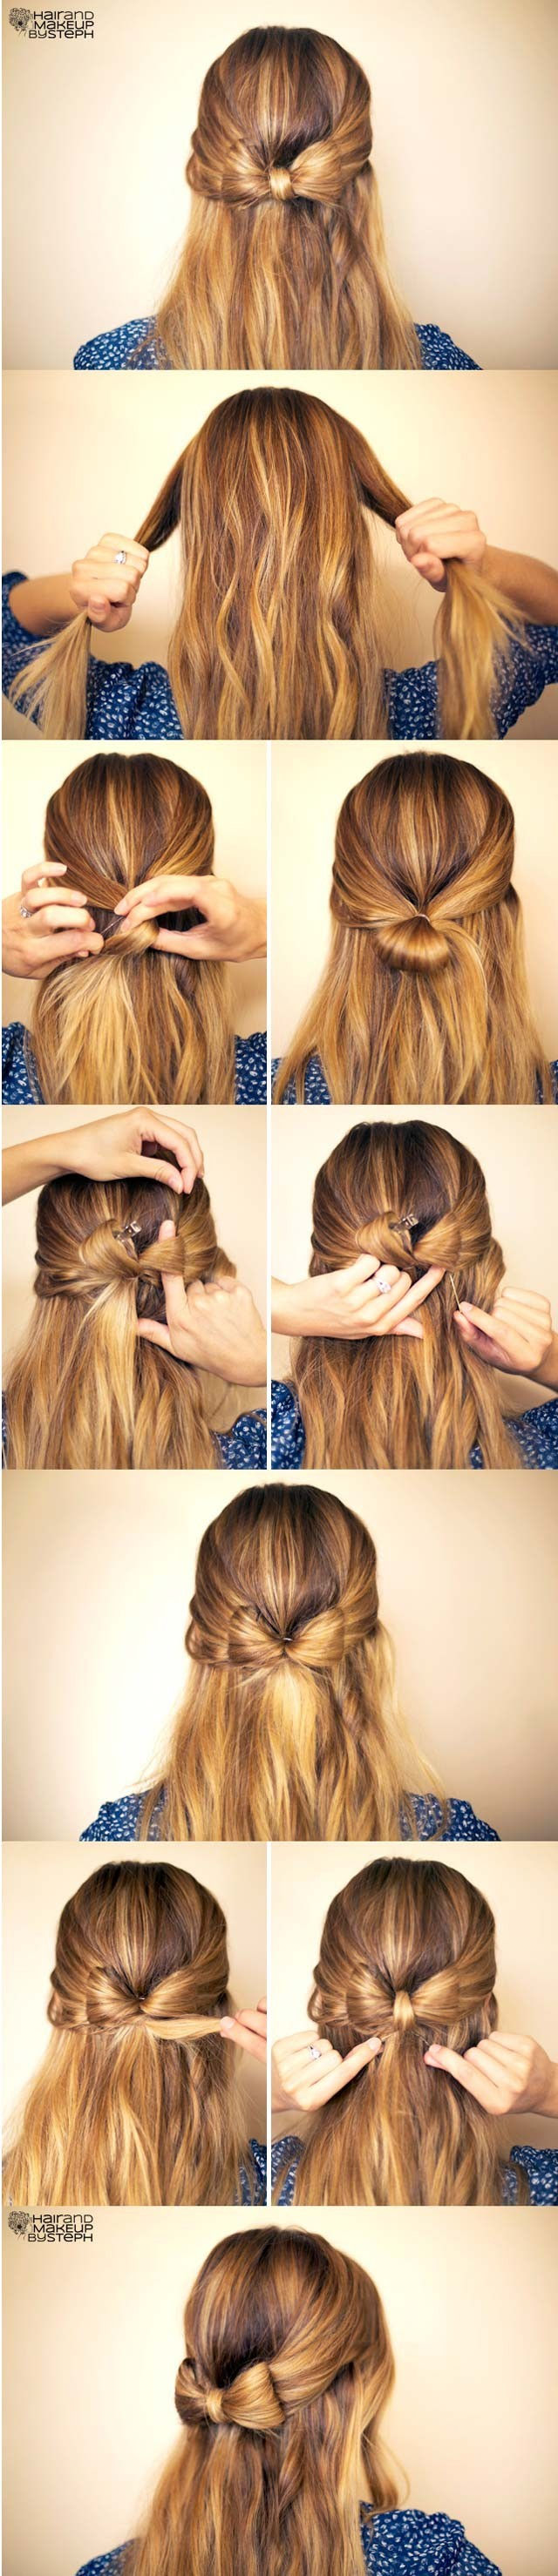 10 Cute hairstyles: Step-by-Step Hairstyles for Long Hair